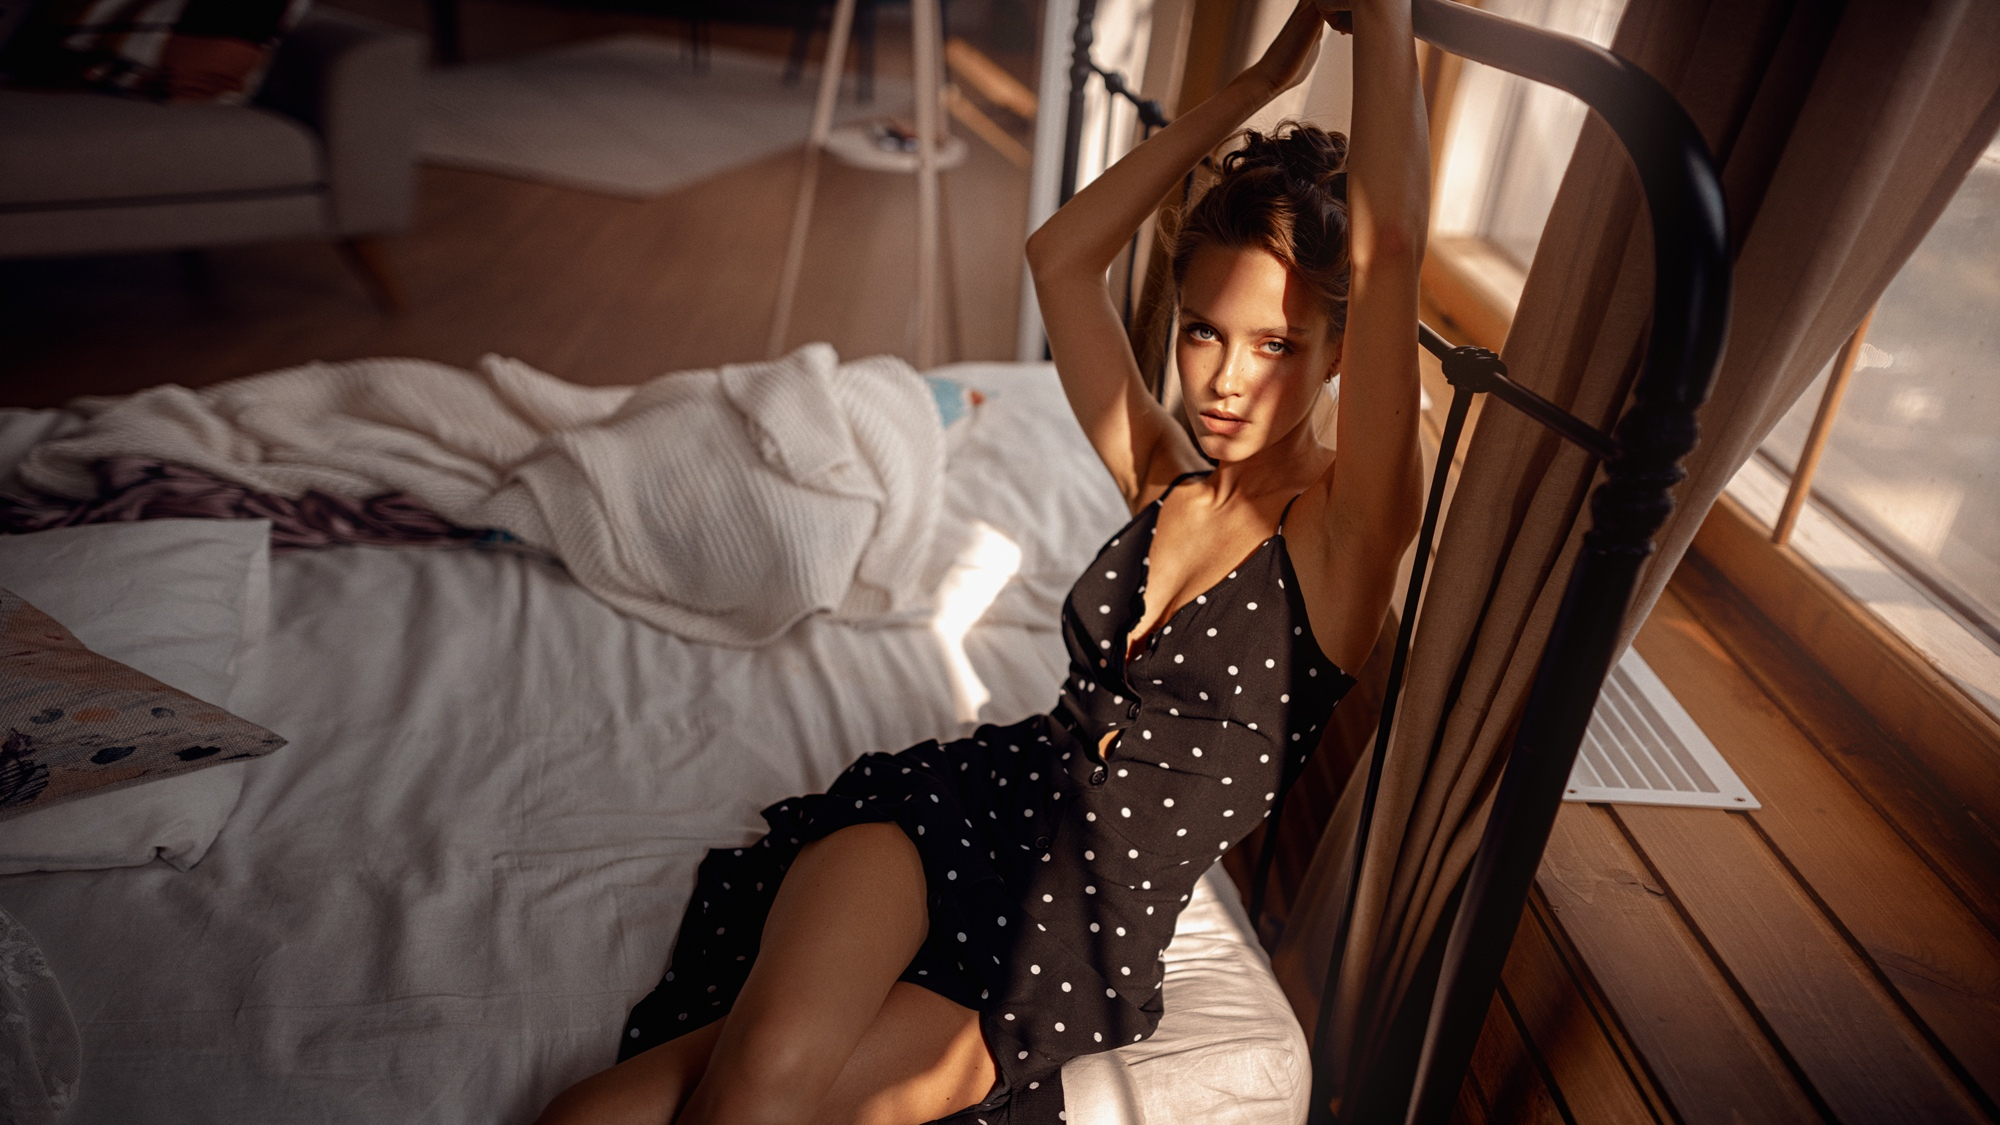 People 2000x1125 women model brunette hairbun looking at viewer arms up cleavage dress sitting in bed bed depth of field indoors women indoors Georgy Chernyadyev polka dots Fenix Raya